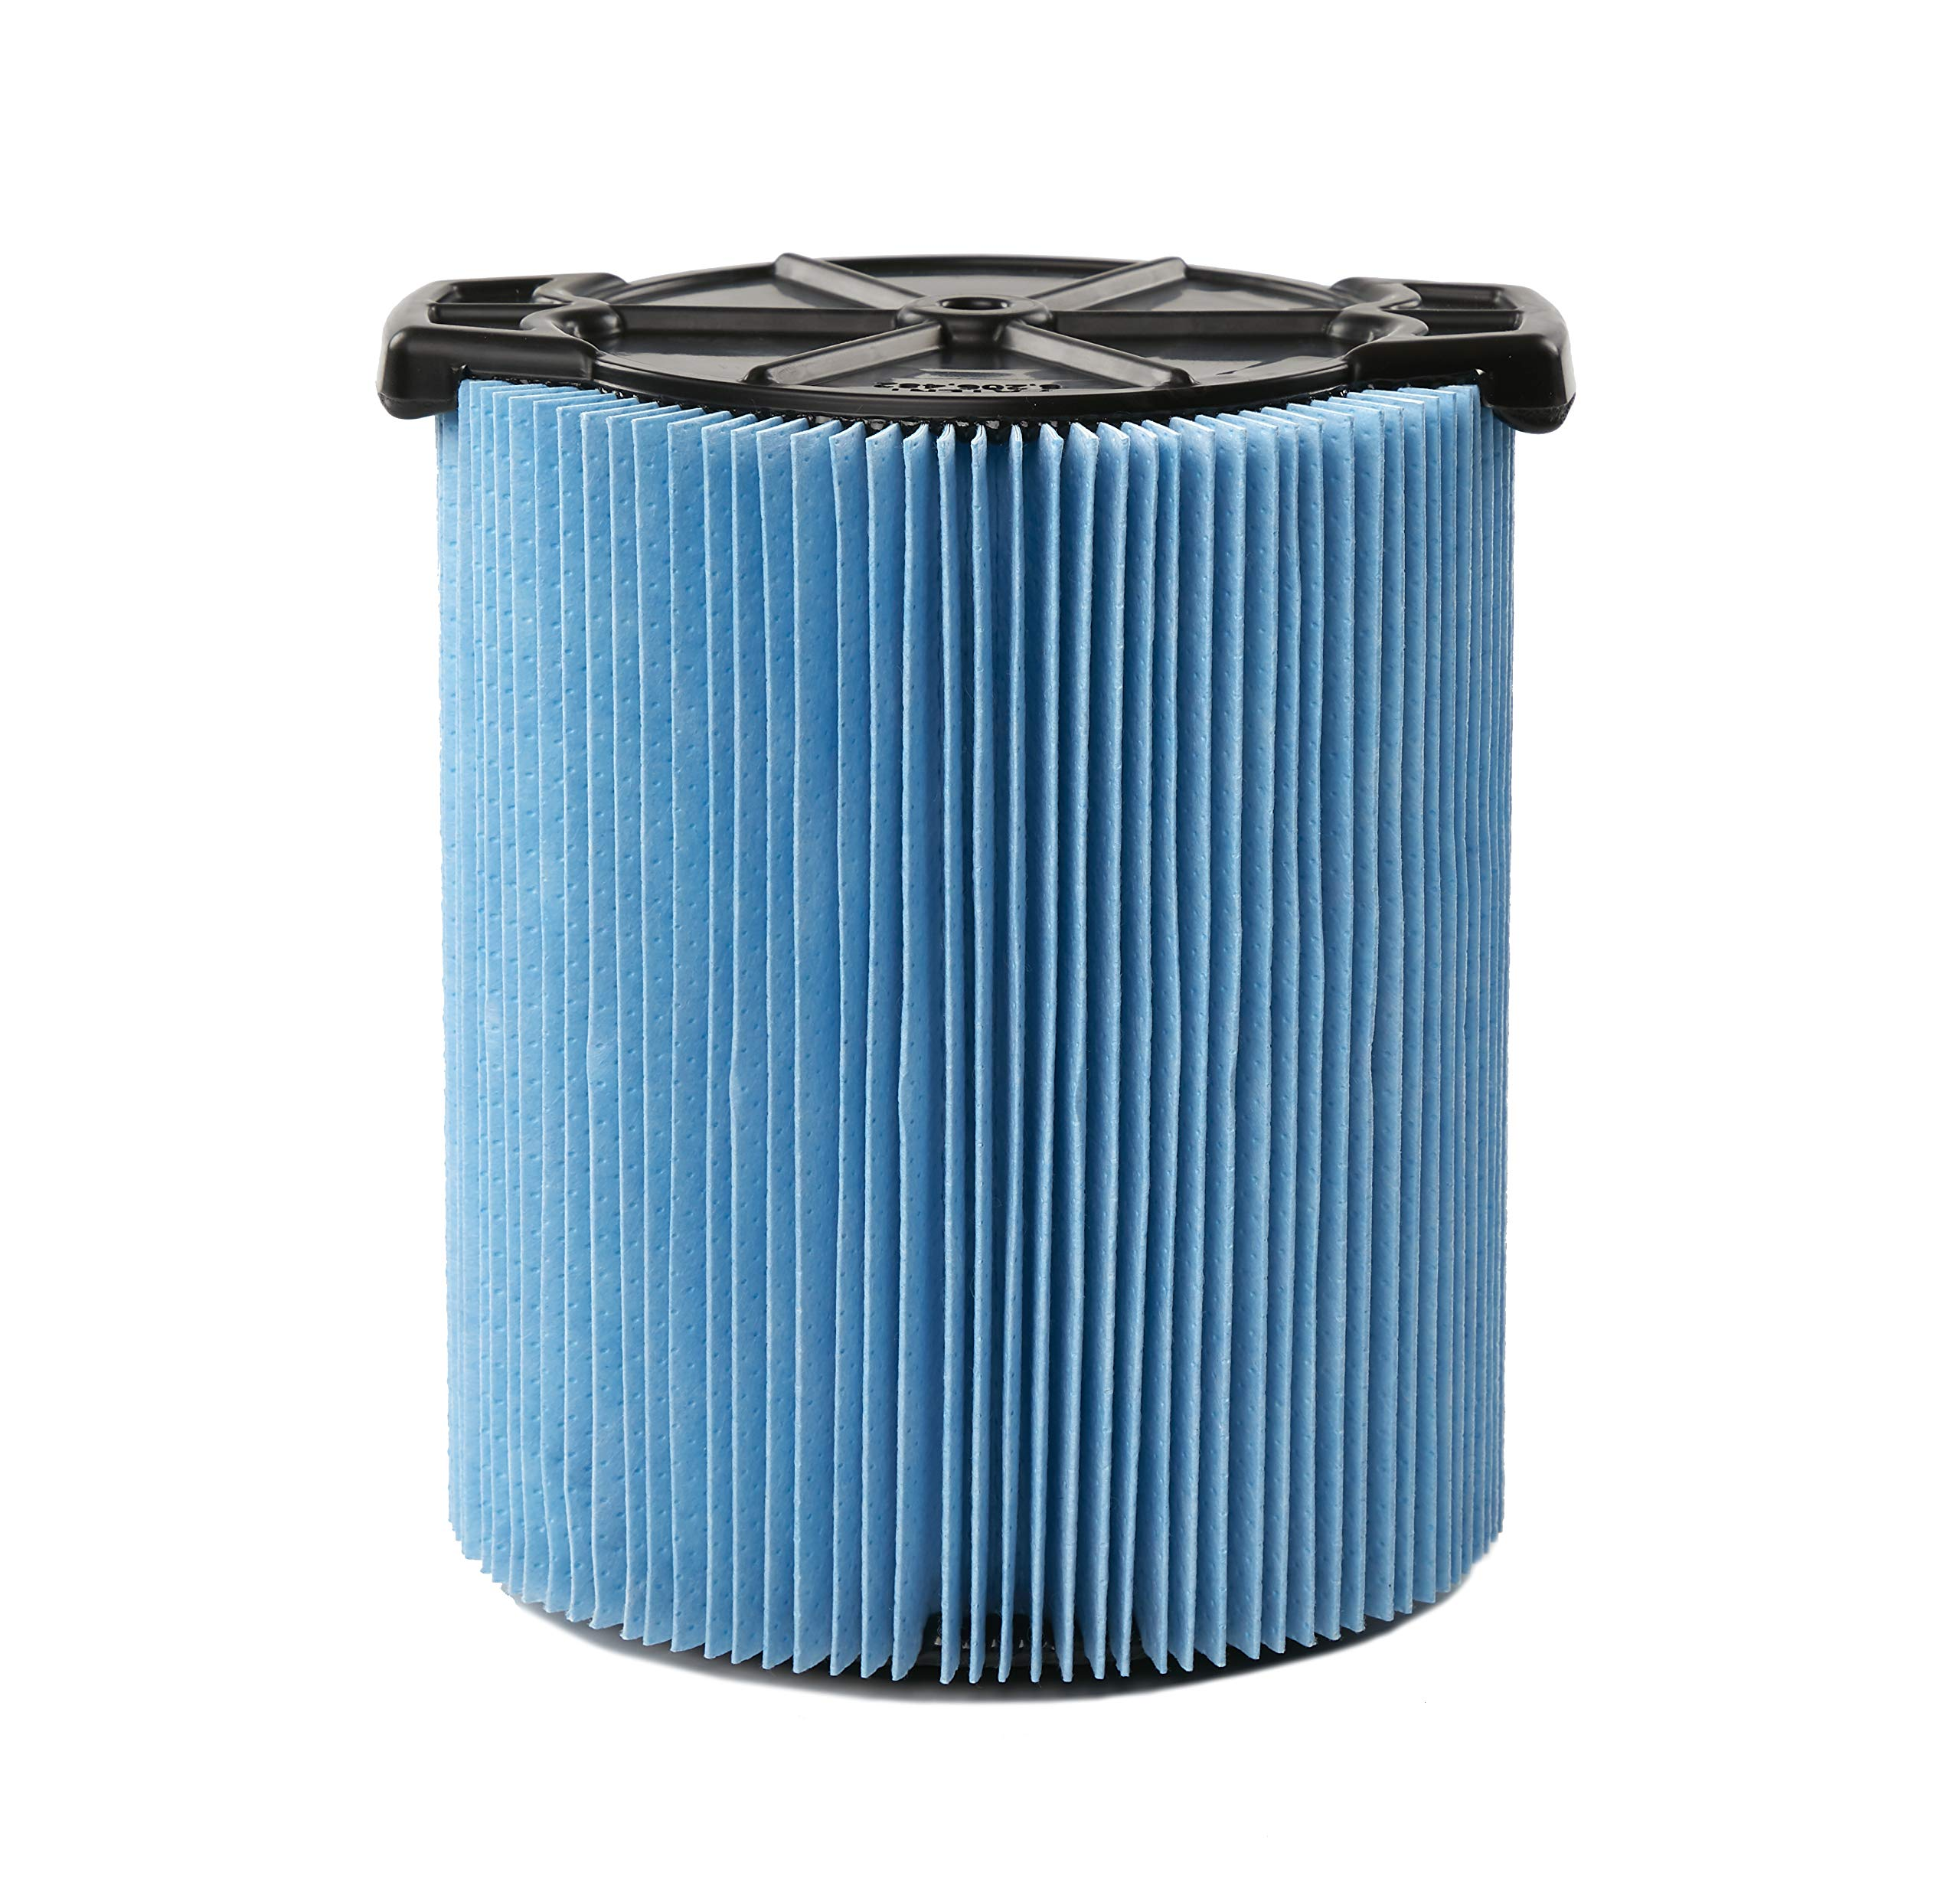 CRAFTSMAN CMXZVBE38751 Fine Dust Wet/Dry Vac Filter for 5 to 20 Gallon Shop Vacuums